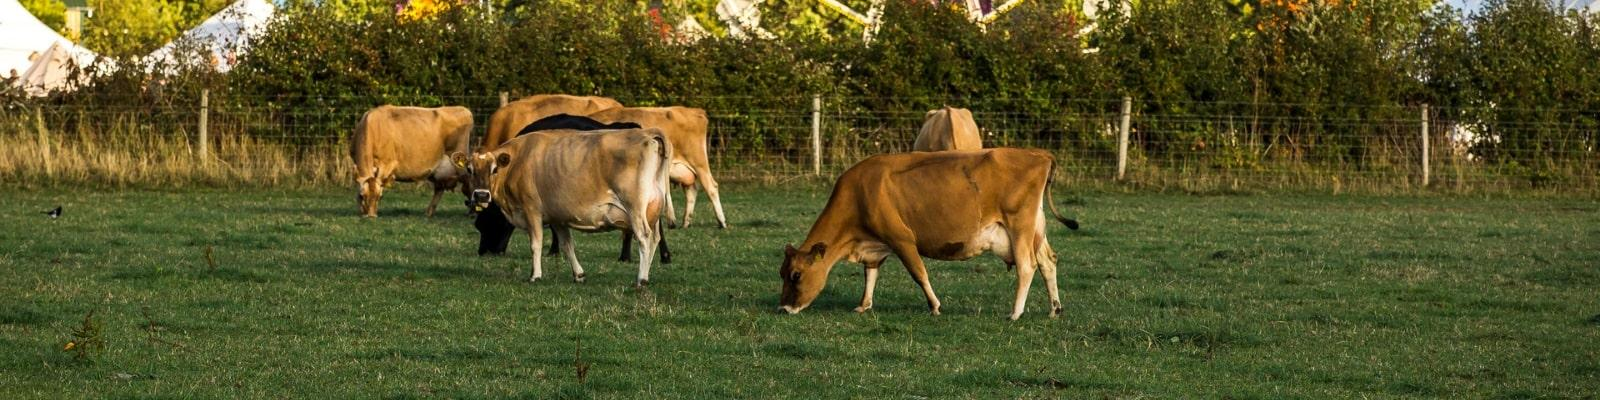 https://www.airfield.ie/wp-content/uploads/2019/02/Jersey-Cows-Grazing-at-Airfield-Estate-min.jpg